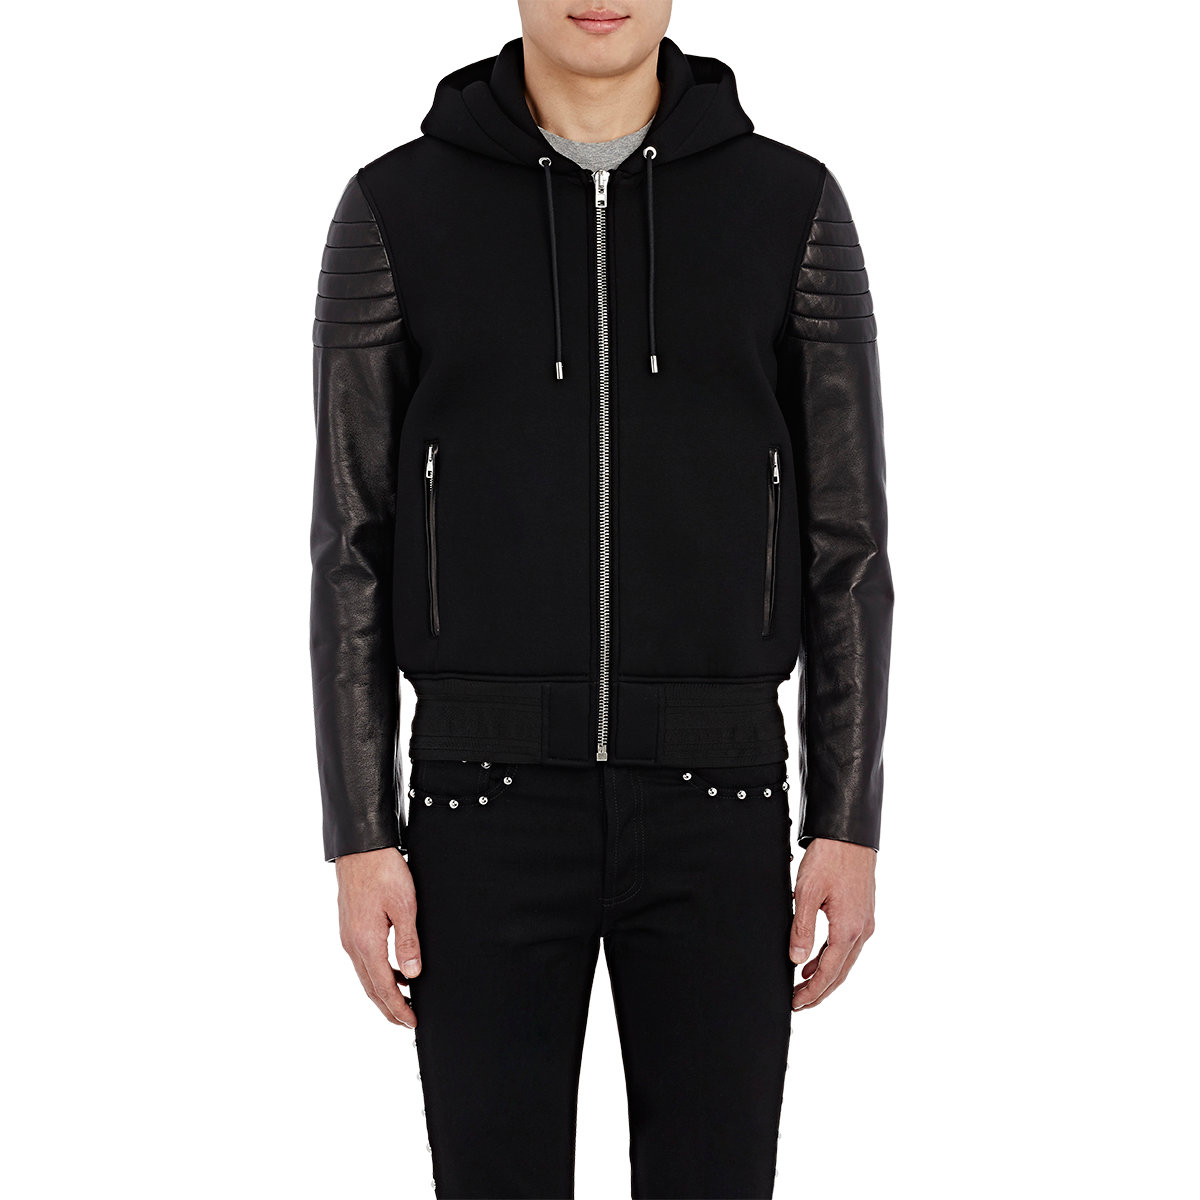 Givenchy Combo Hooded Jacket in Black for Men